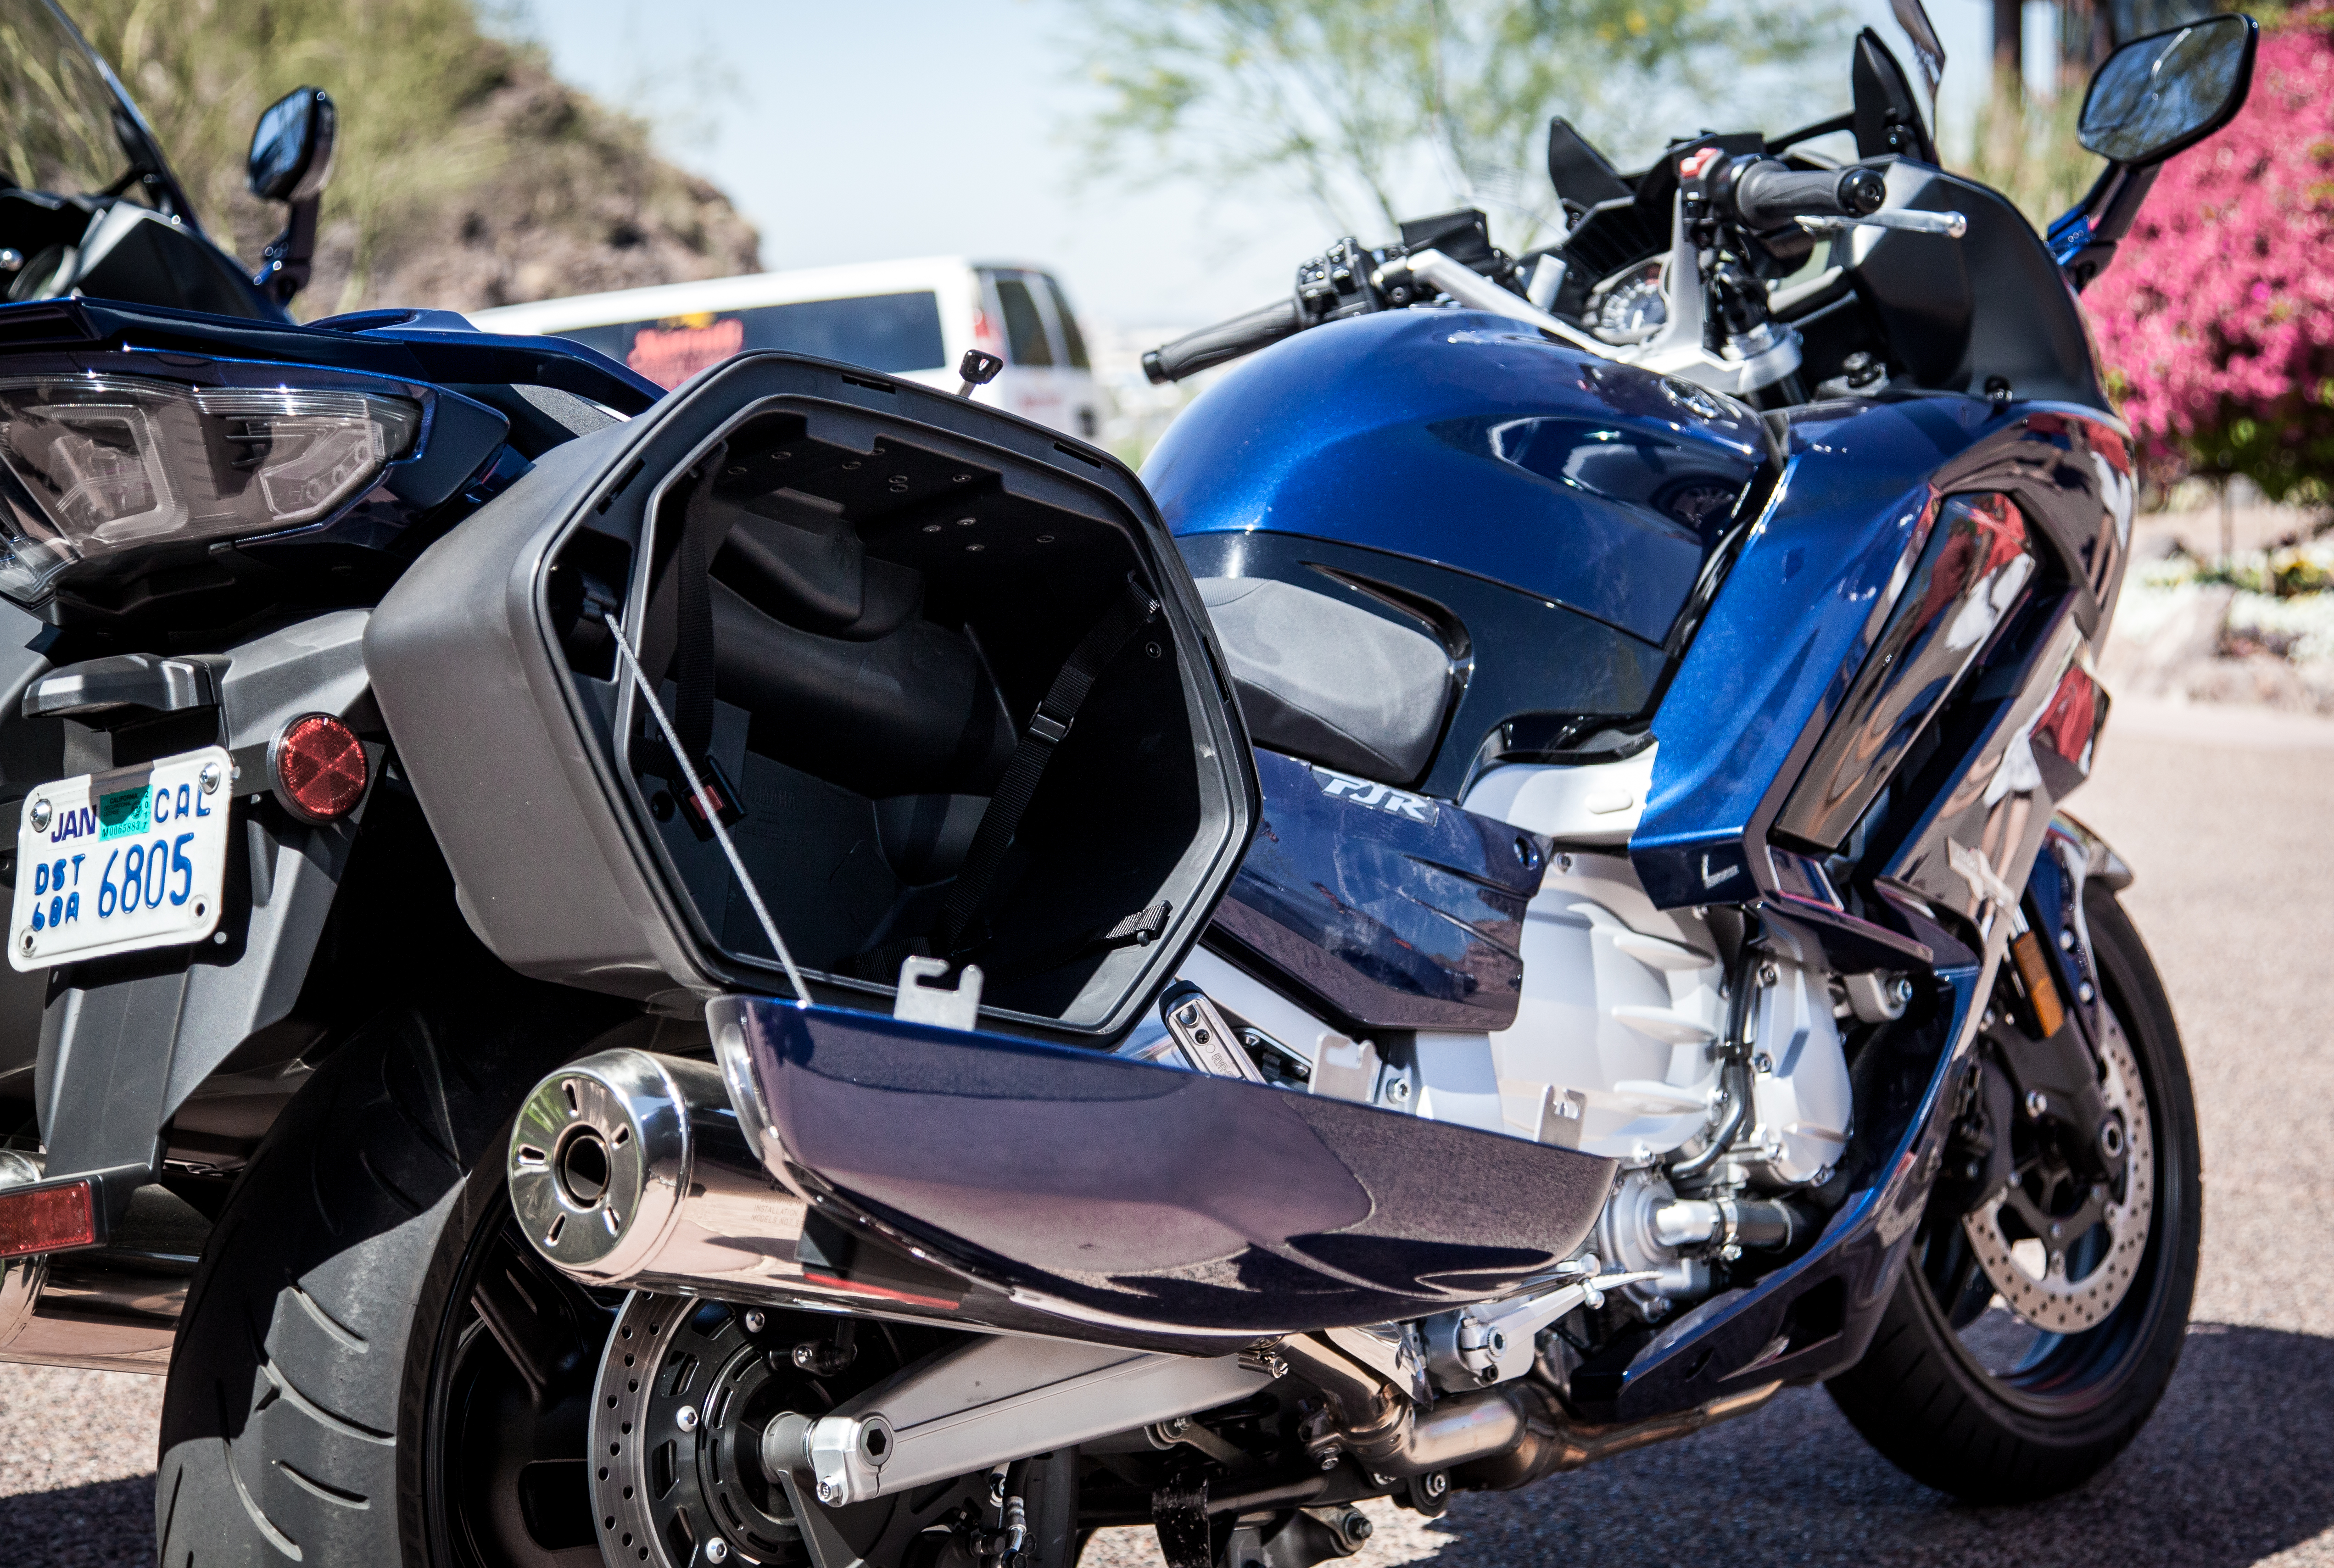 2016 Yamaha FJR1300 first ride review - RevZilla